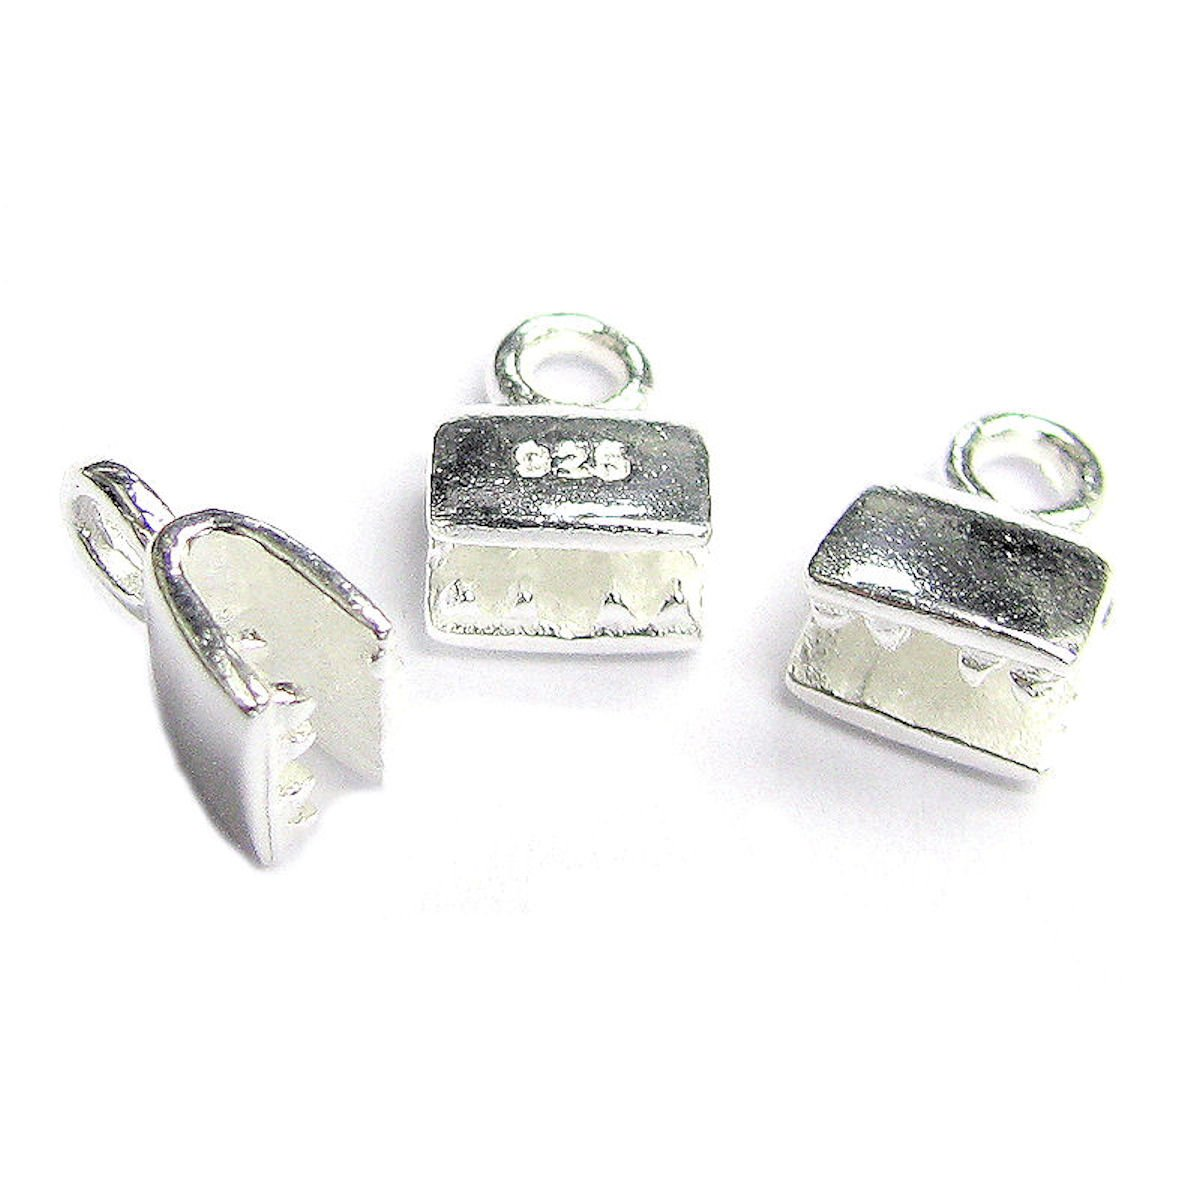 4 pcs .925 Sterling Silver Leather Ribbon Clip Cord End Crimp Cap/Findings/Bright Dreambell SX142WX4